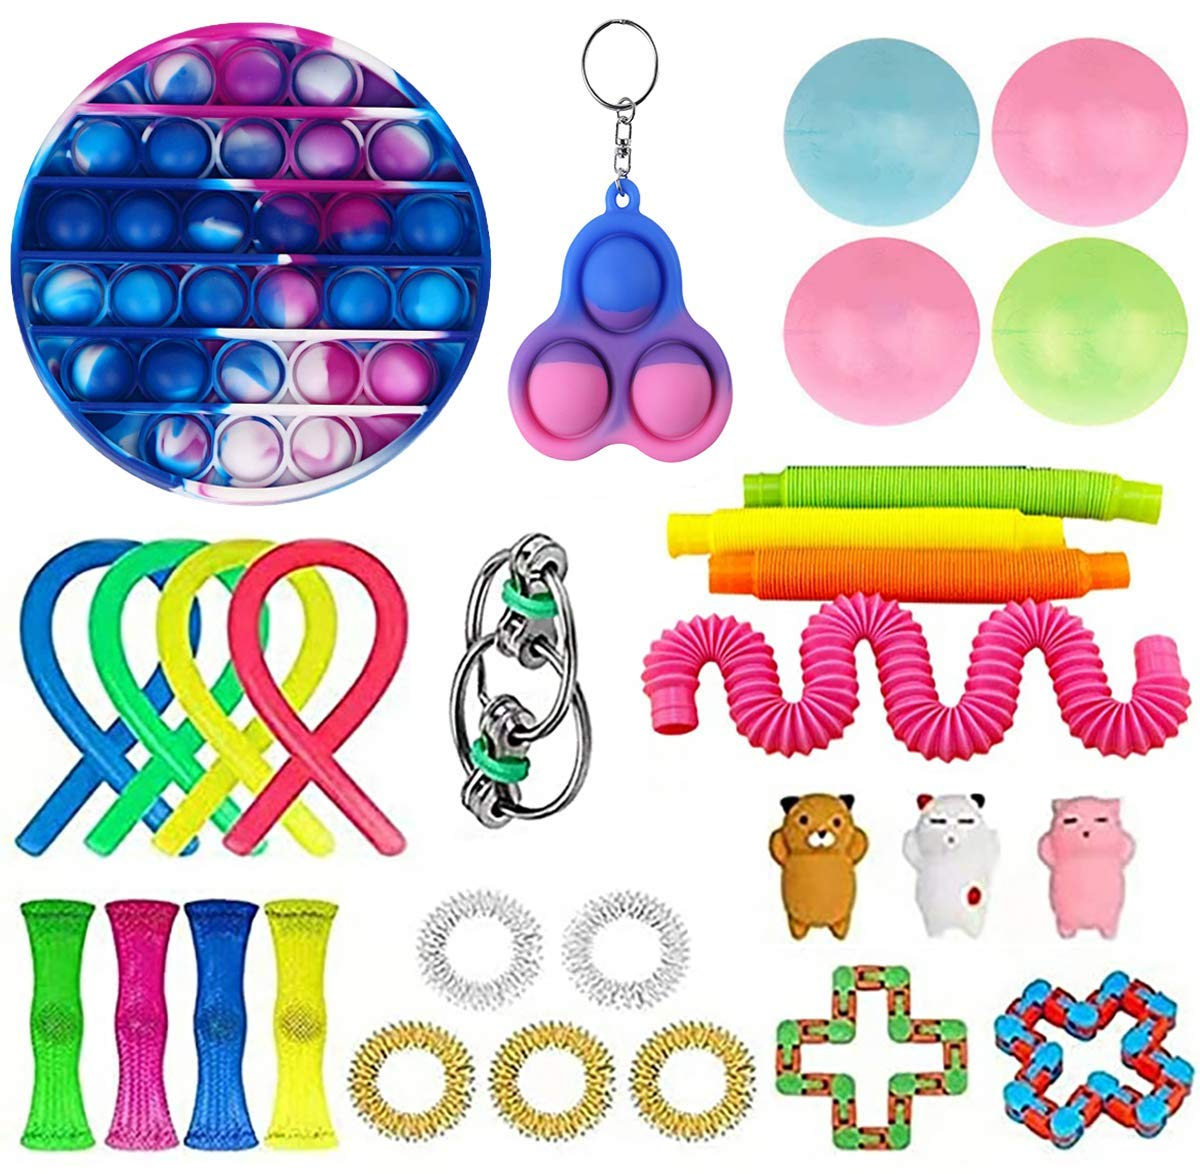 XINGJI 30 Pcs Fidget Toys Set, Fidget Pack Cheap, Sensory Toys Pack for Kids Adults, Simples Dimple Figetget Toys, Relieves Stress and Anxiety Fidget Toy (B-30 P2)